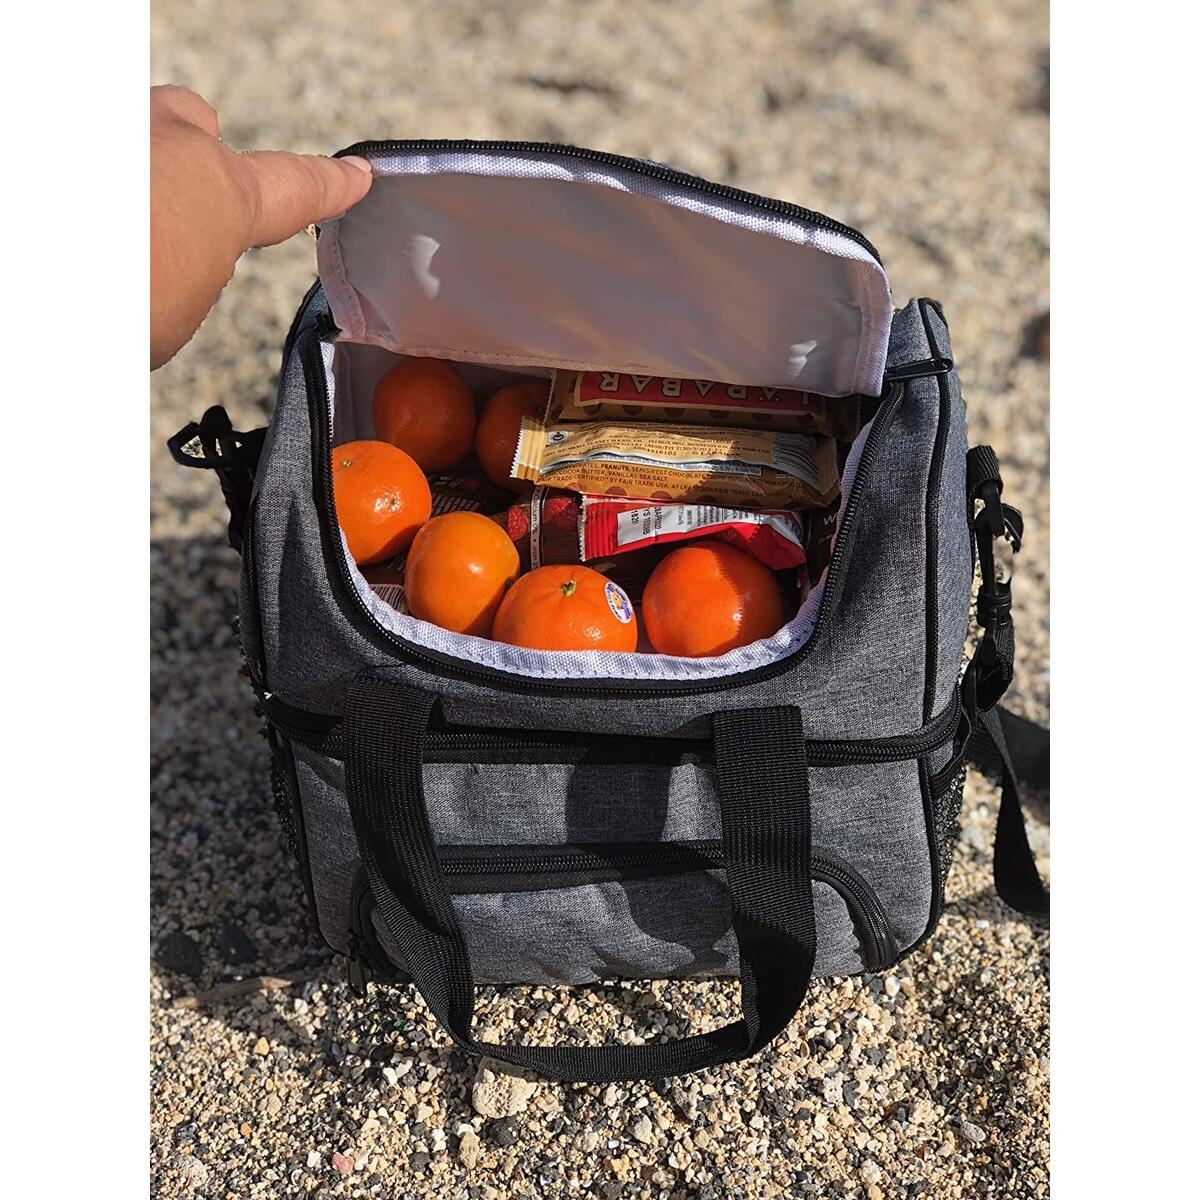 Insulated Lunch Bag Large Cooler Lunch Box for Men Woman Adults - Adjustable Shoulder Strap Water-Resistant Cooler Bag for Hot Lunches & Cold Drinks Lunch Boxes Thermal Lunch Pack by JaceBox